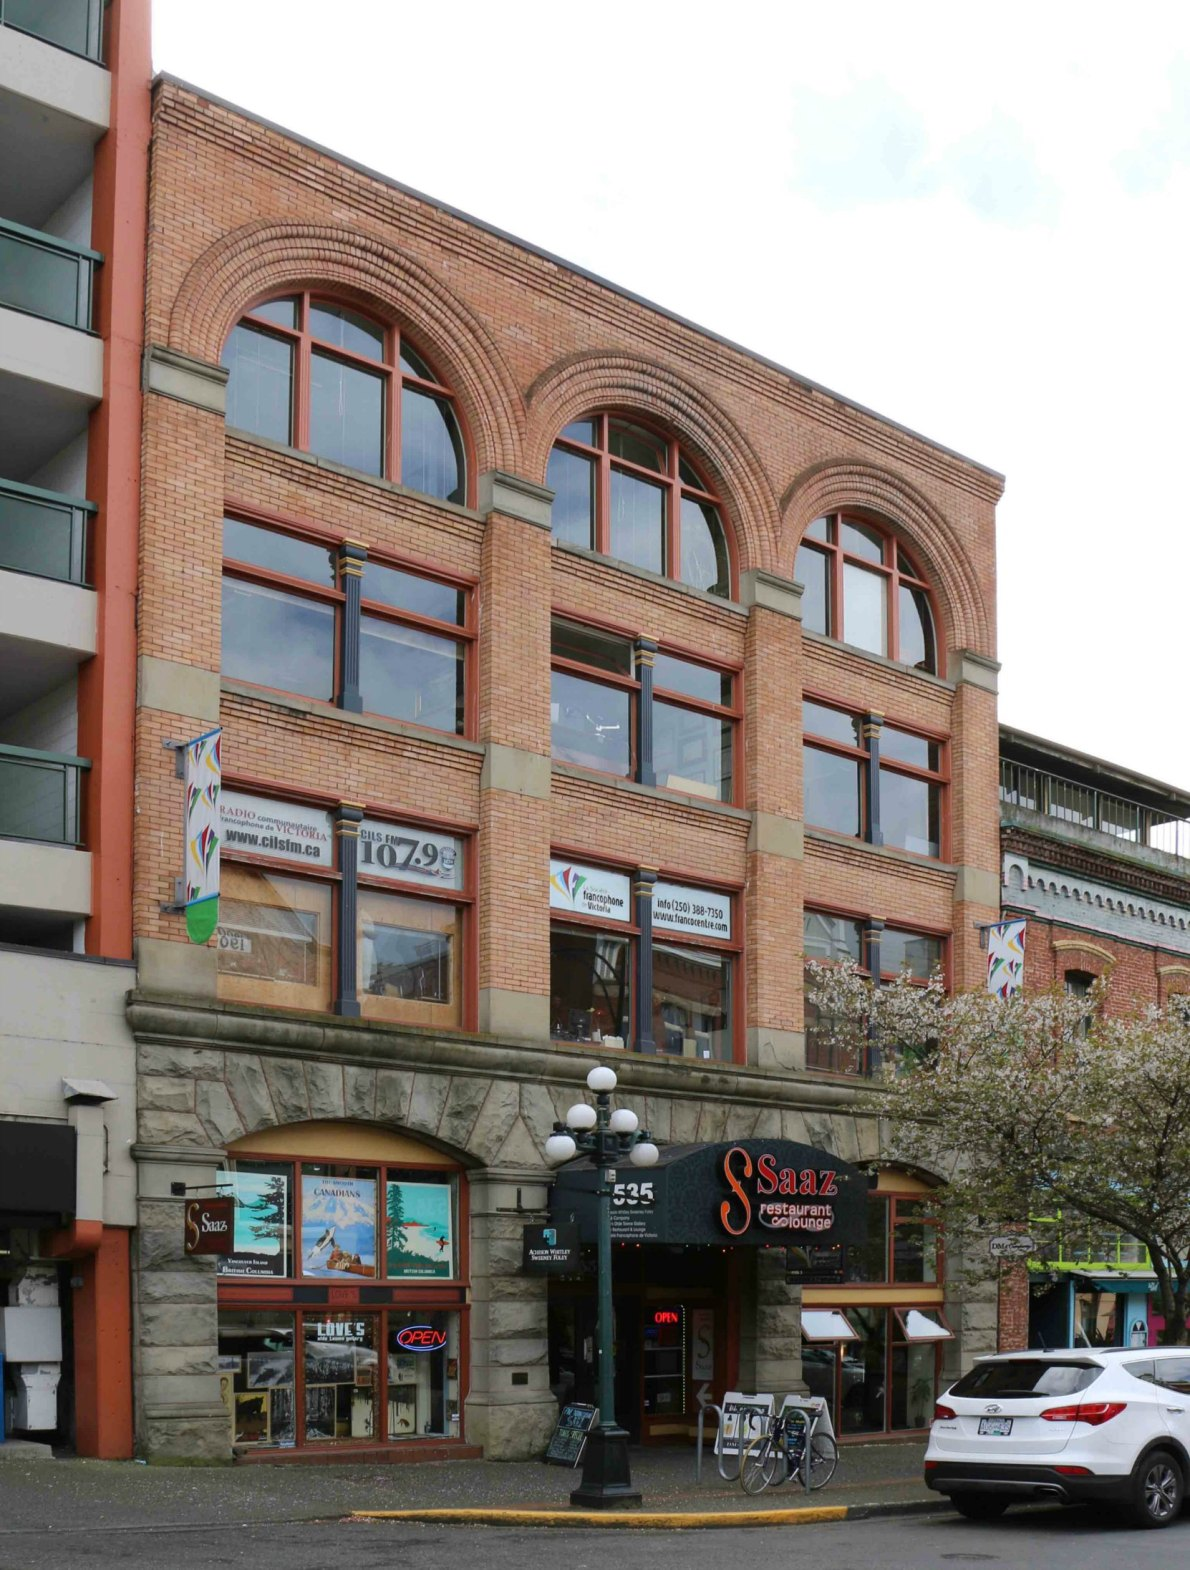 535 Yates Street, built in 1900 and now listed on the Canadian Register of Historic Places